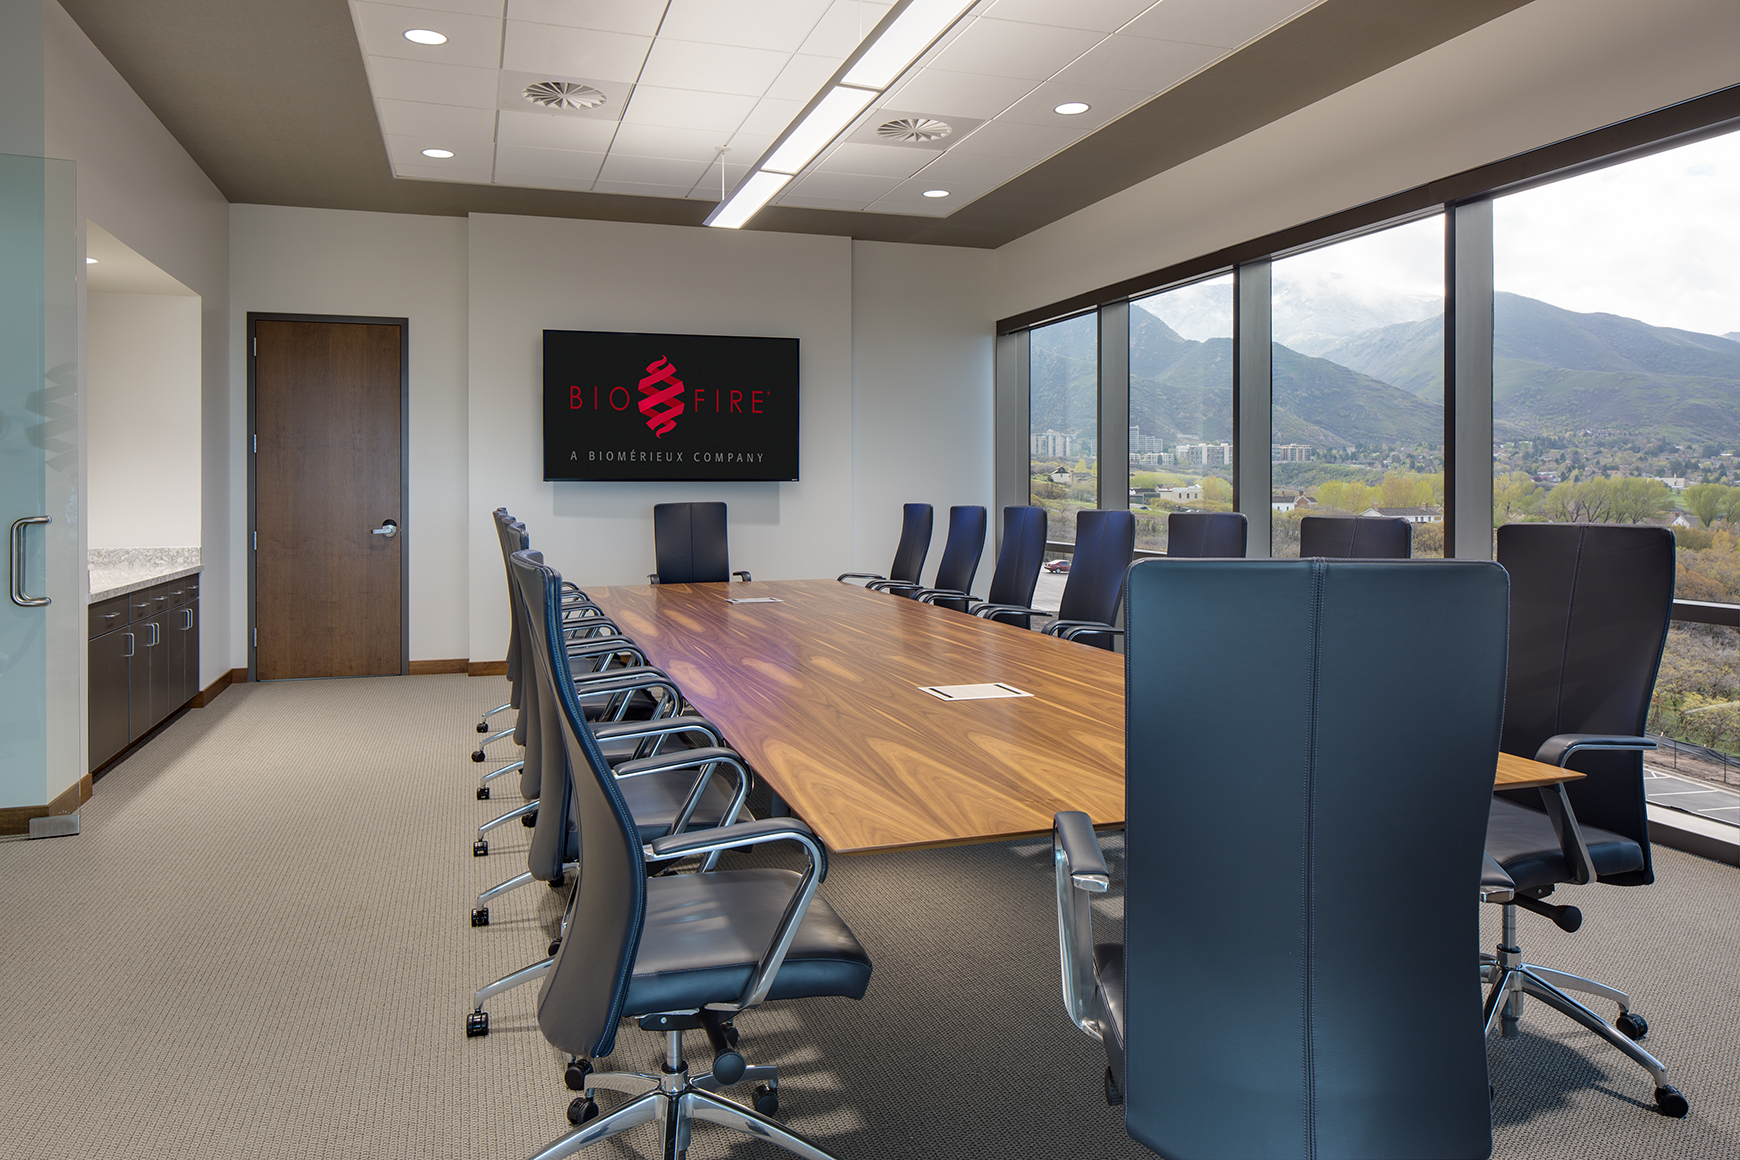 This photograph shows an interior view of a corporate boardroom with a long wood boardroom table, a monitor at the end of the table and floor to ceiling glass windows with views of mountains.